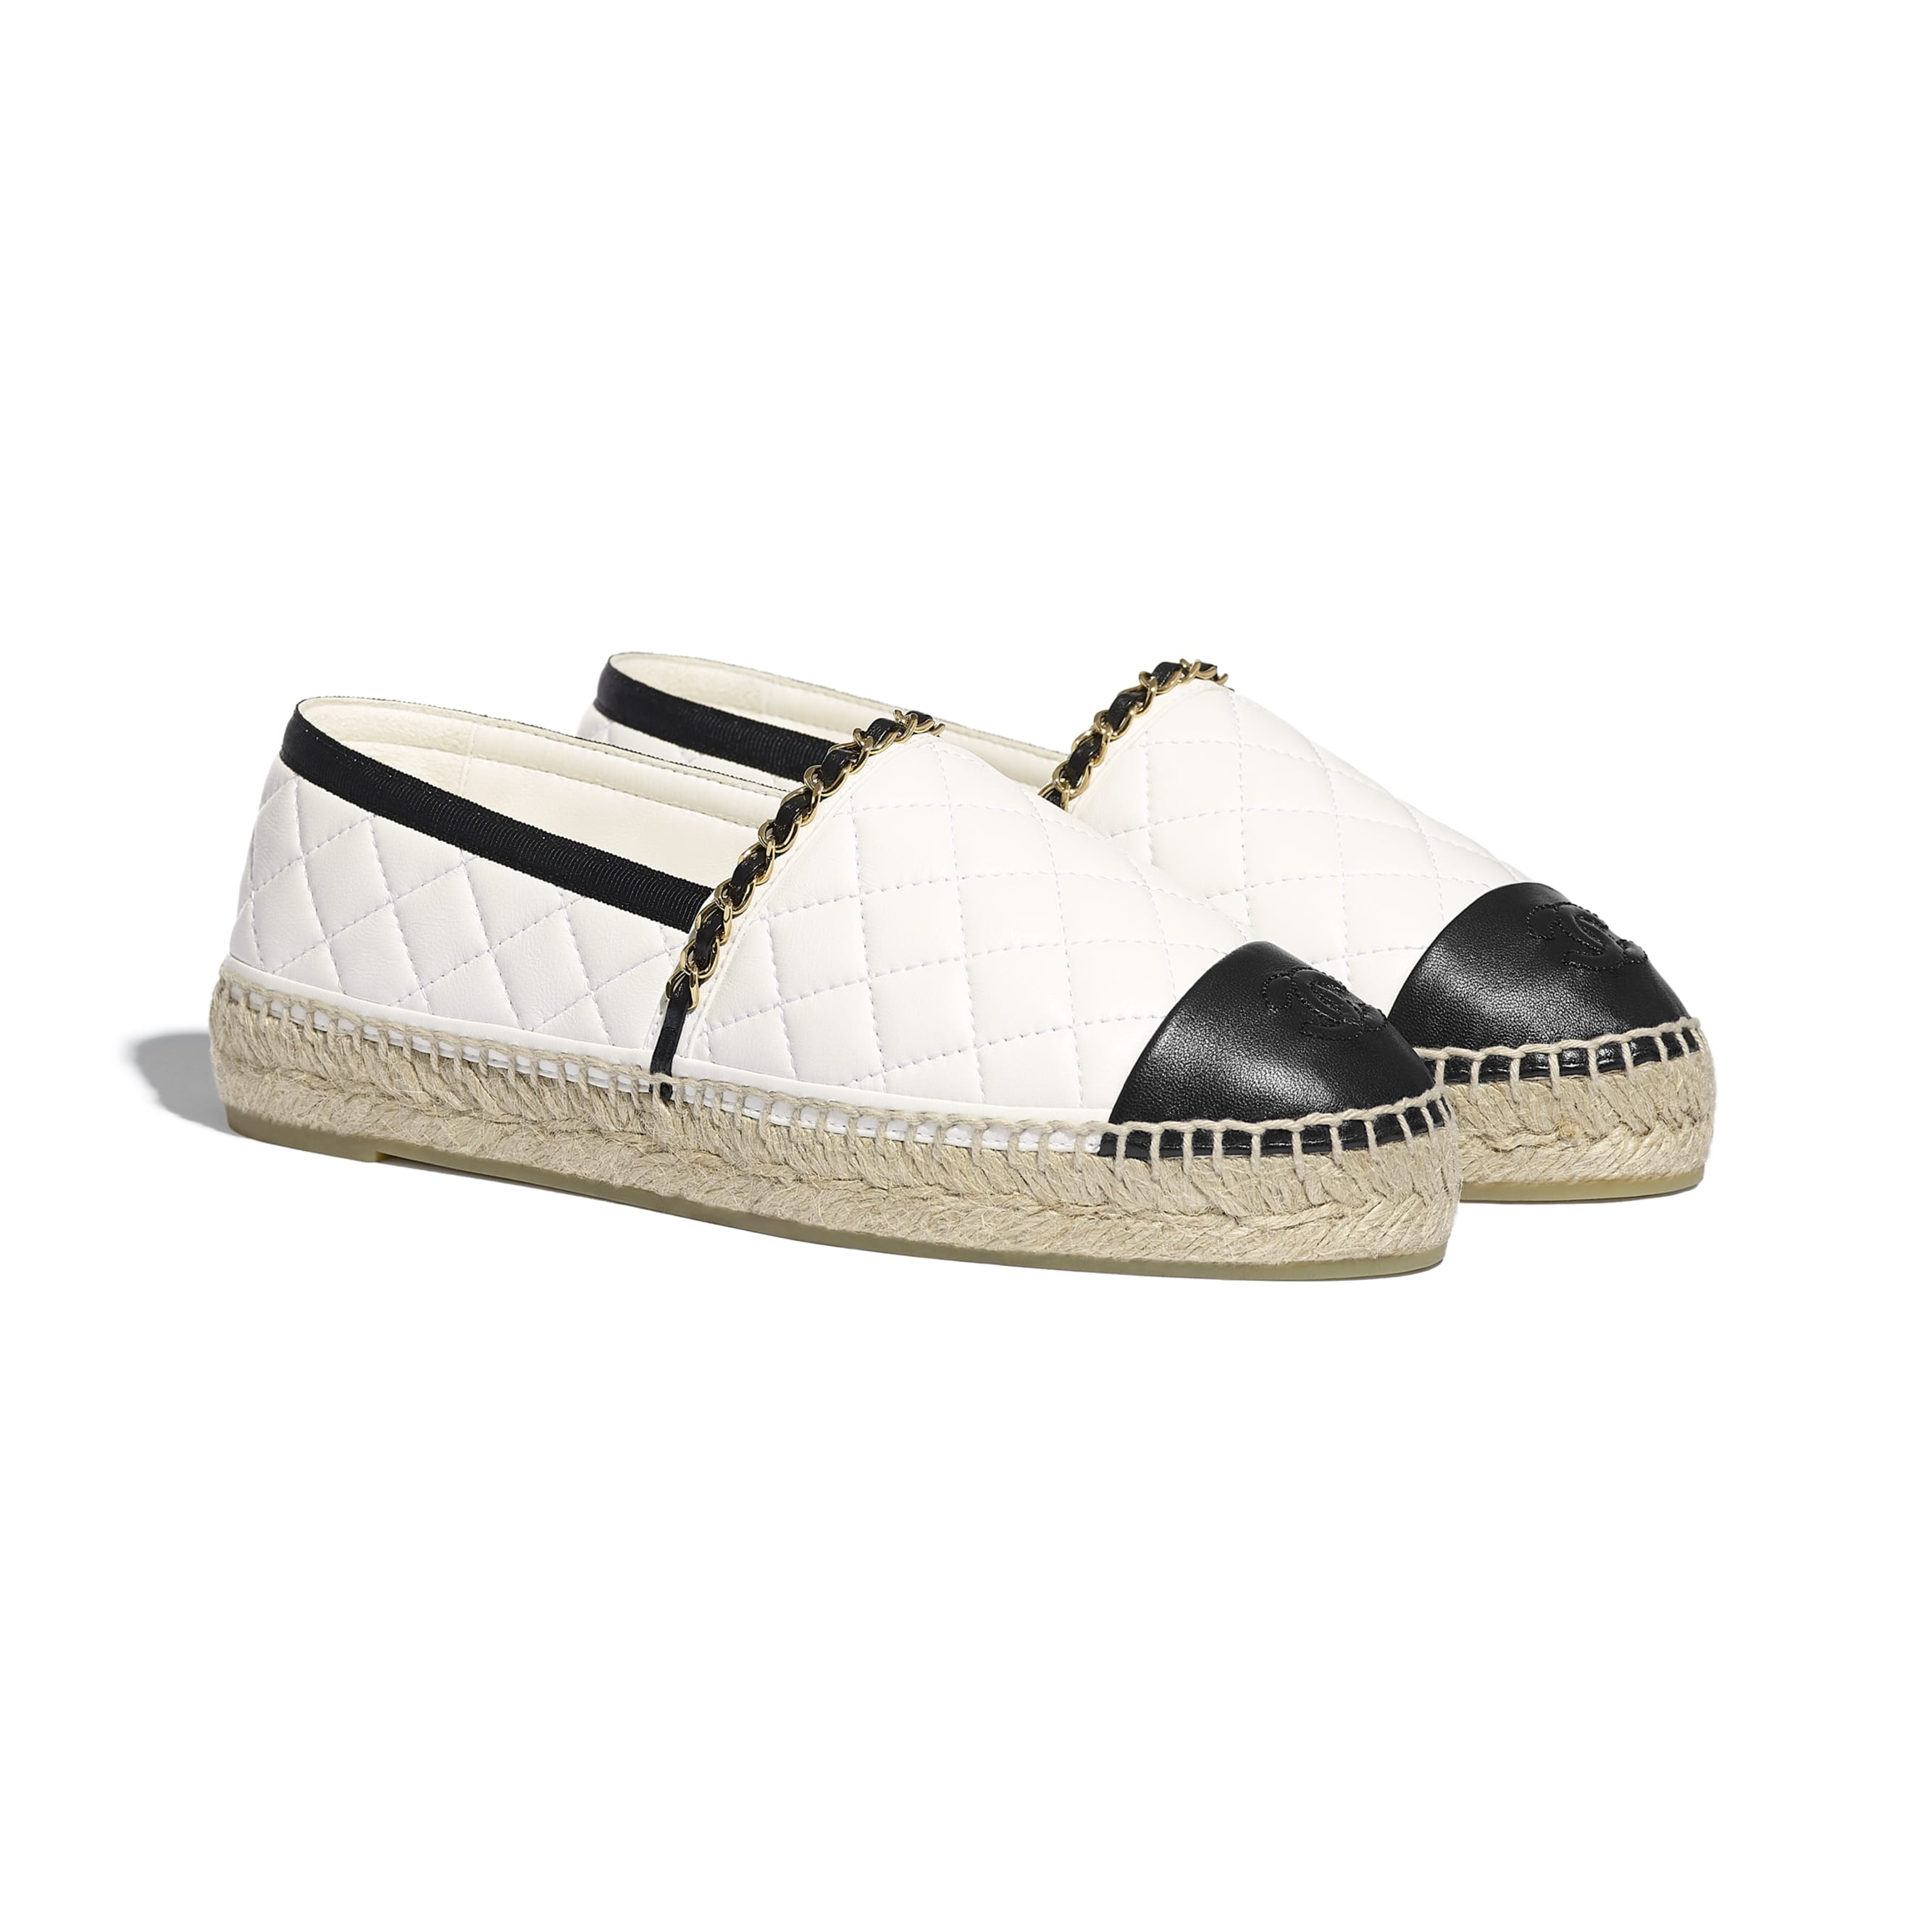 Espadrilles - White & Black - Lambskin - CHANEL - Alternative view - see standard sized version